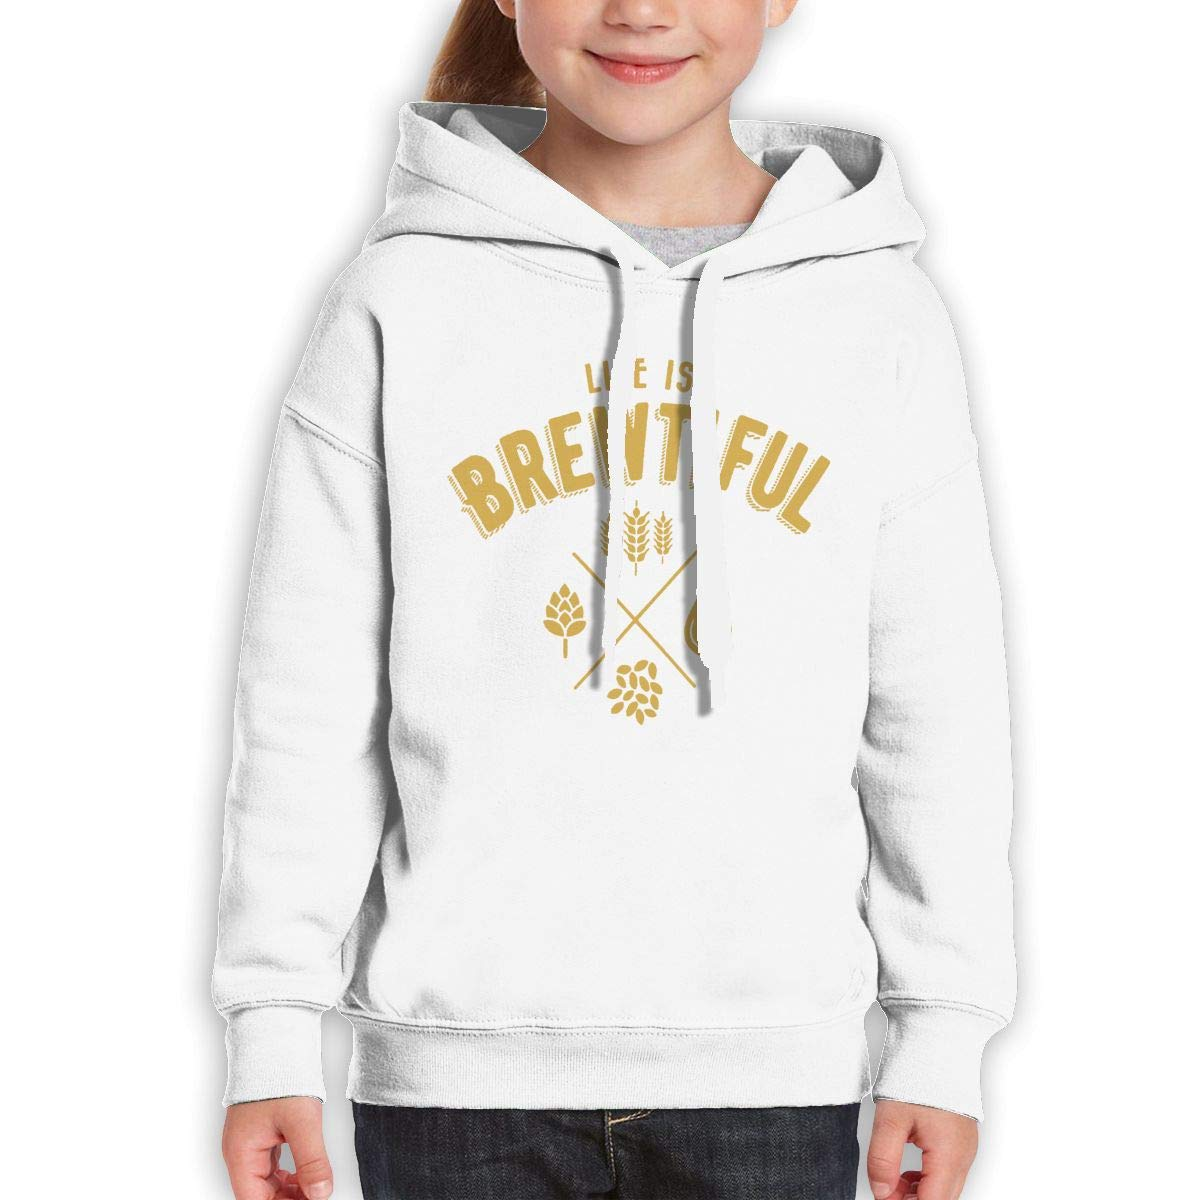 Boys Girls Life is Brewtiful Teen Youth Hoodie White S